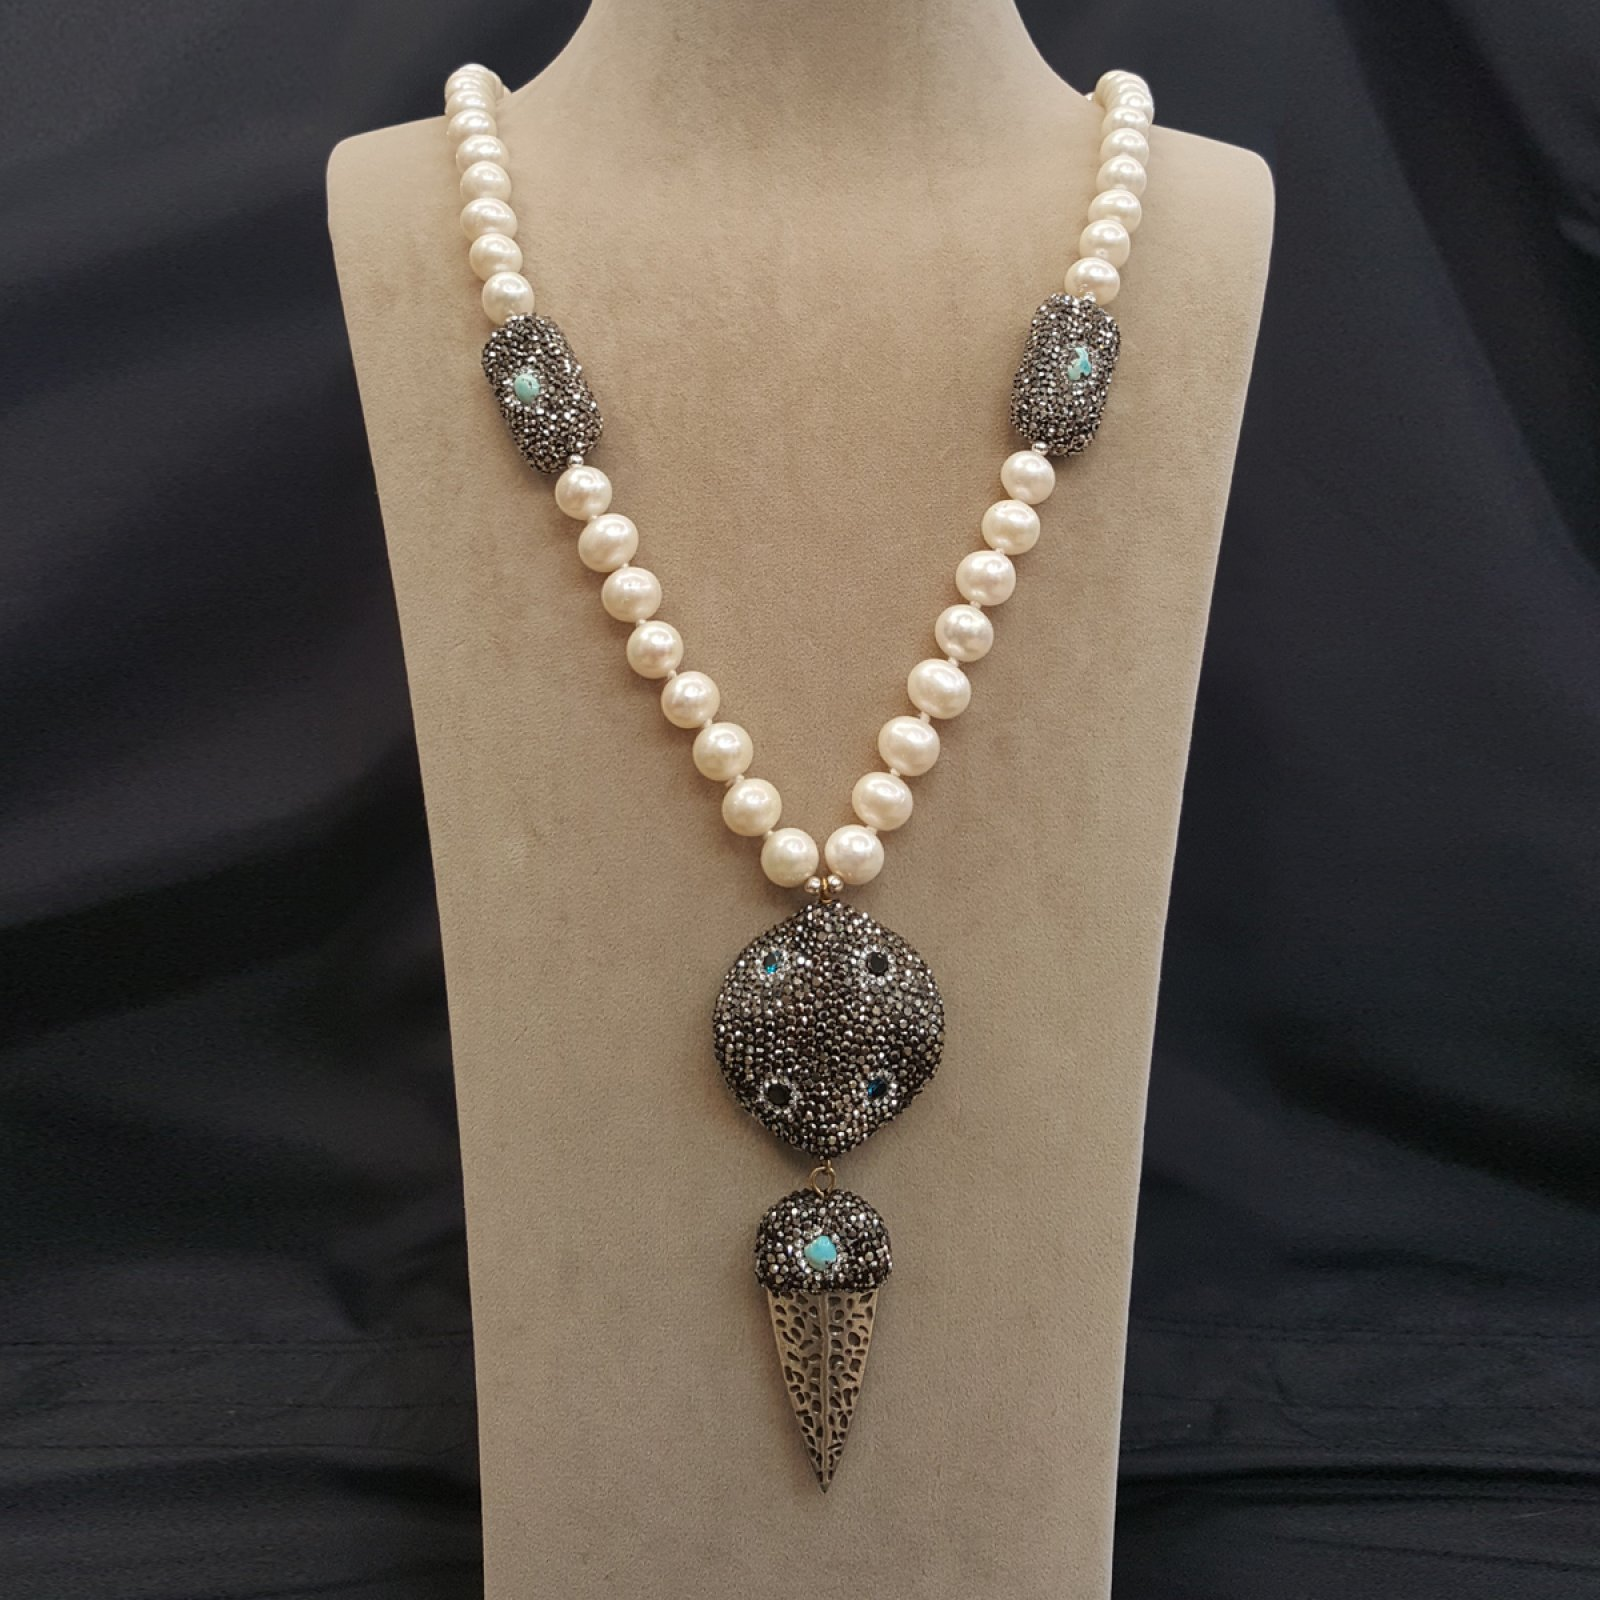 DRN11 - FRESH WATER PEARL NECKLACE DECORATED WITH SWAROVSKI CRYSTALS